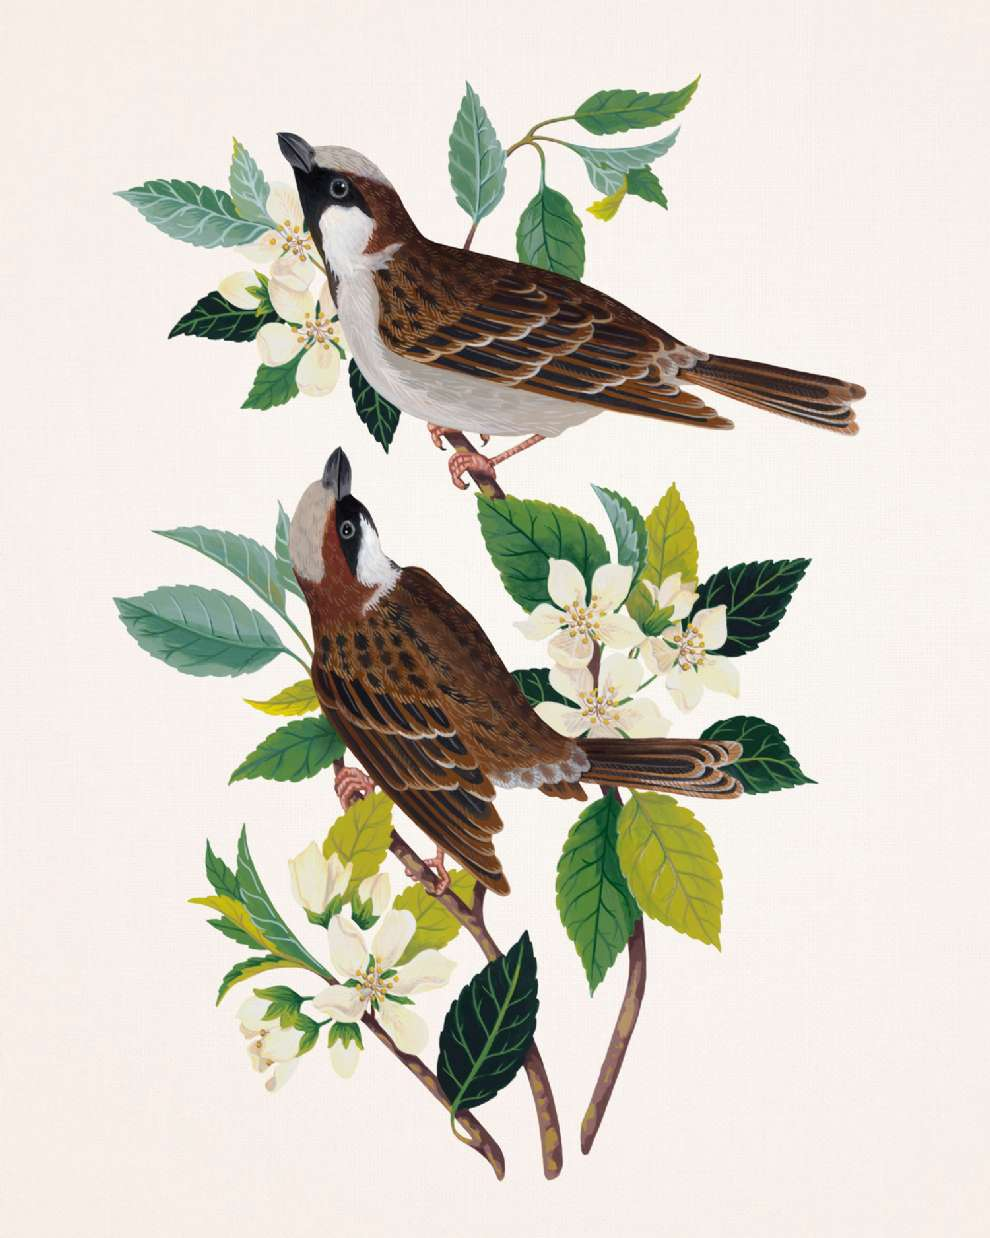 Charlotte Day, Delicately handpainted birds on branches with white flowers